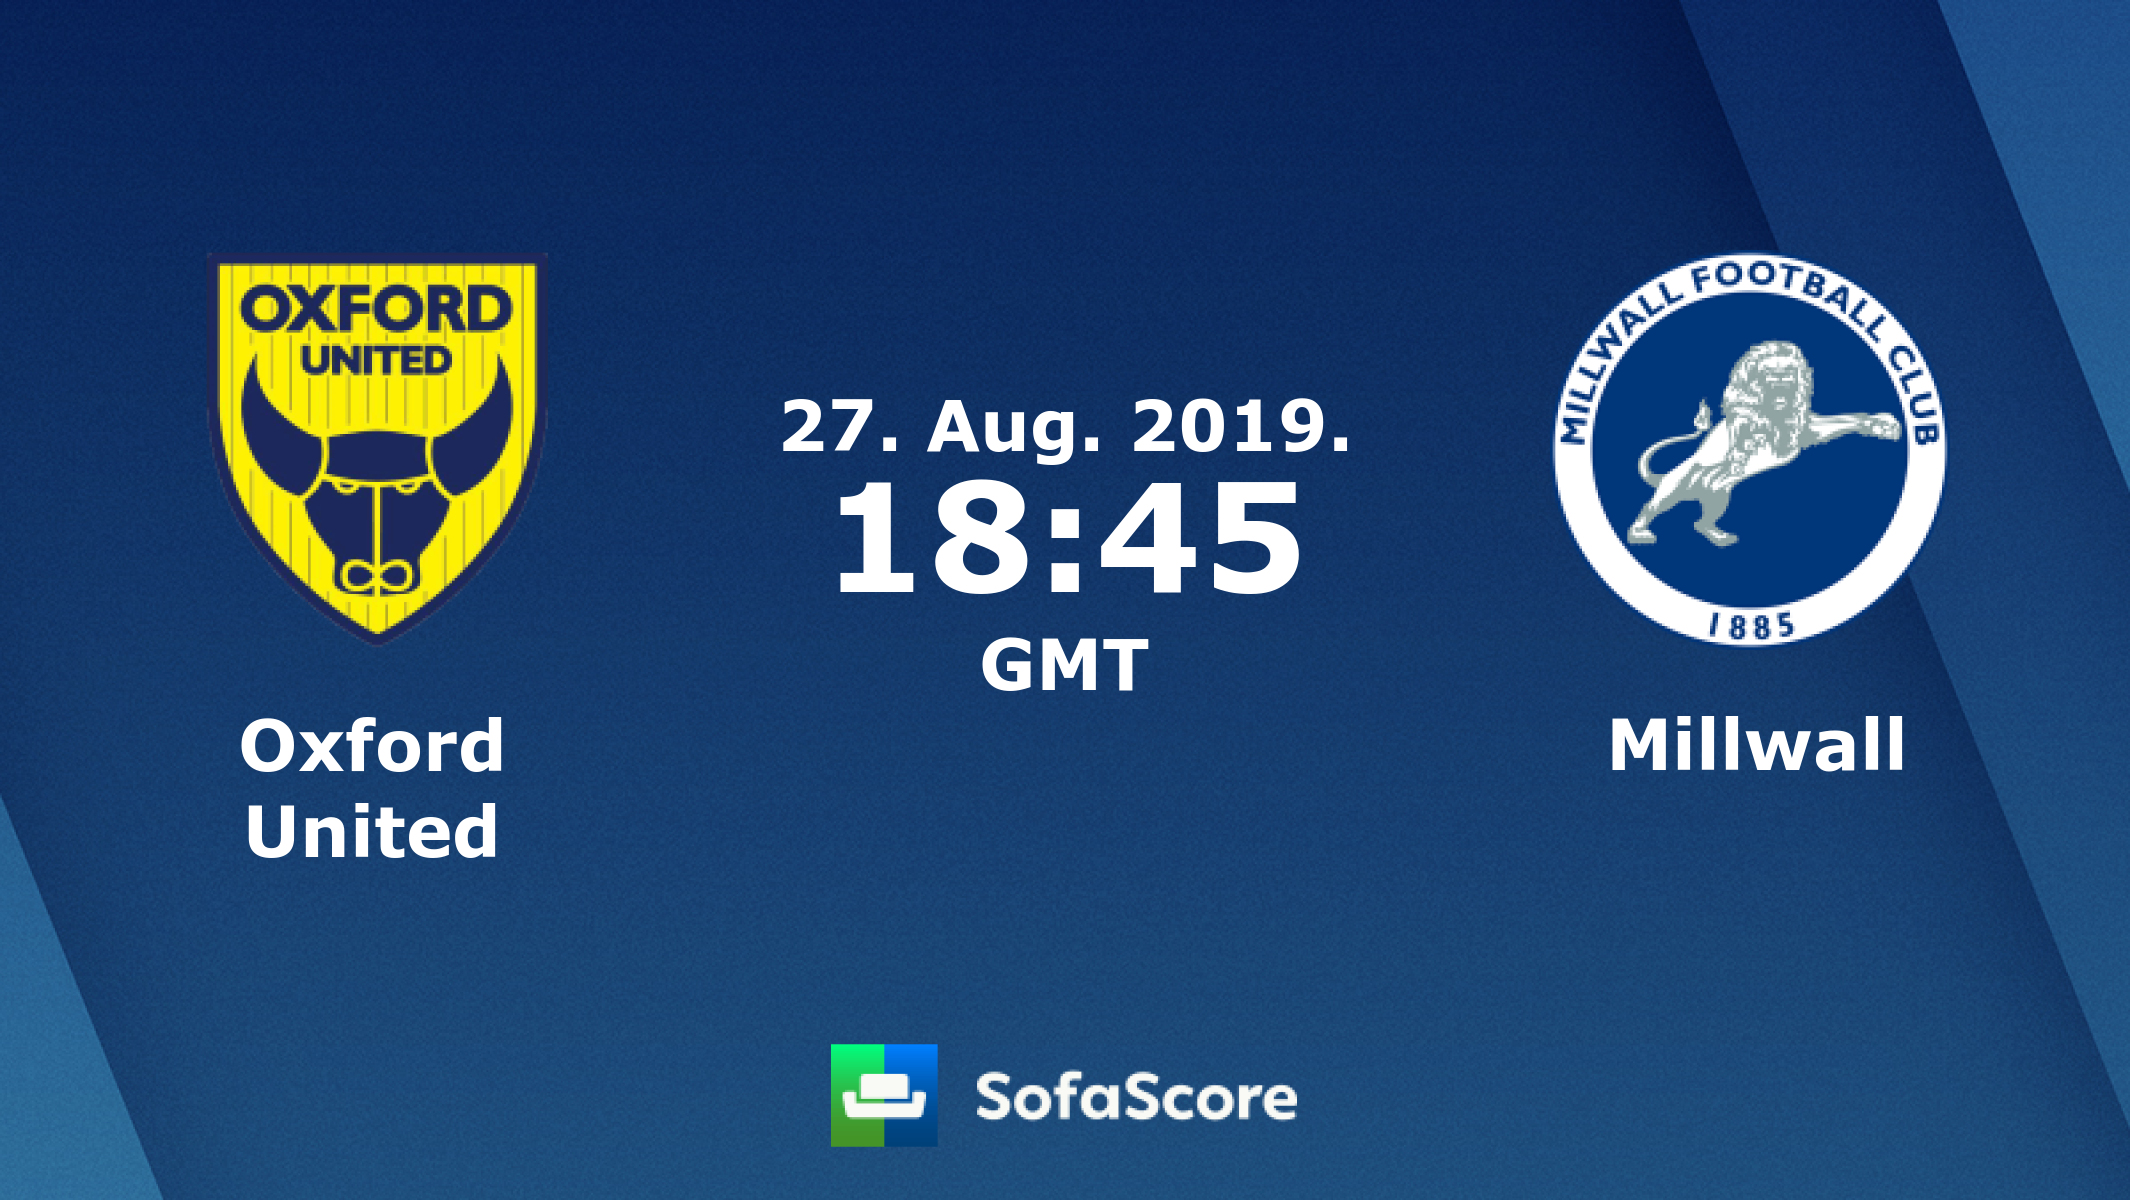 Millwall vs oxford betting websites rendite spread definition in betting